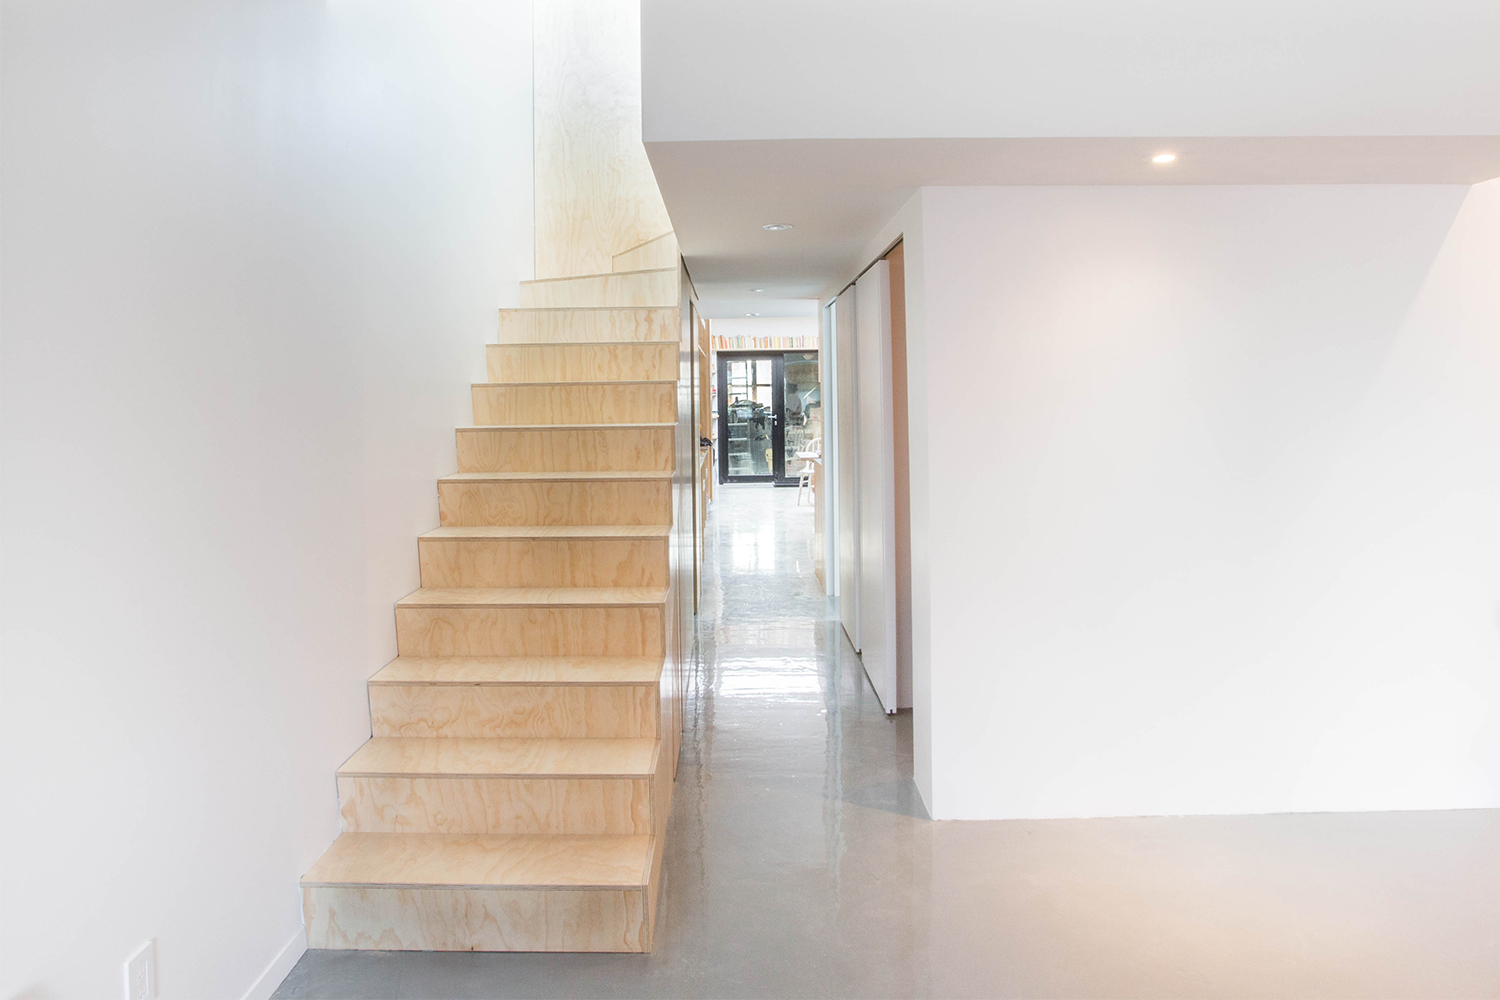 View of the stairs in Russian cherry plywood in a minimalist space. Sliding doors and glossy gray epoxy floor